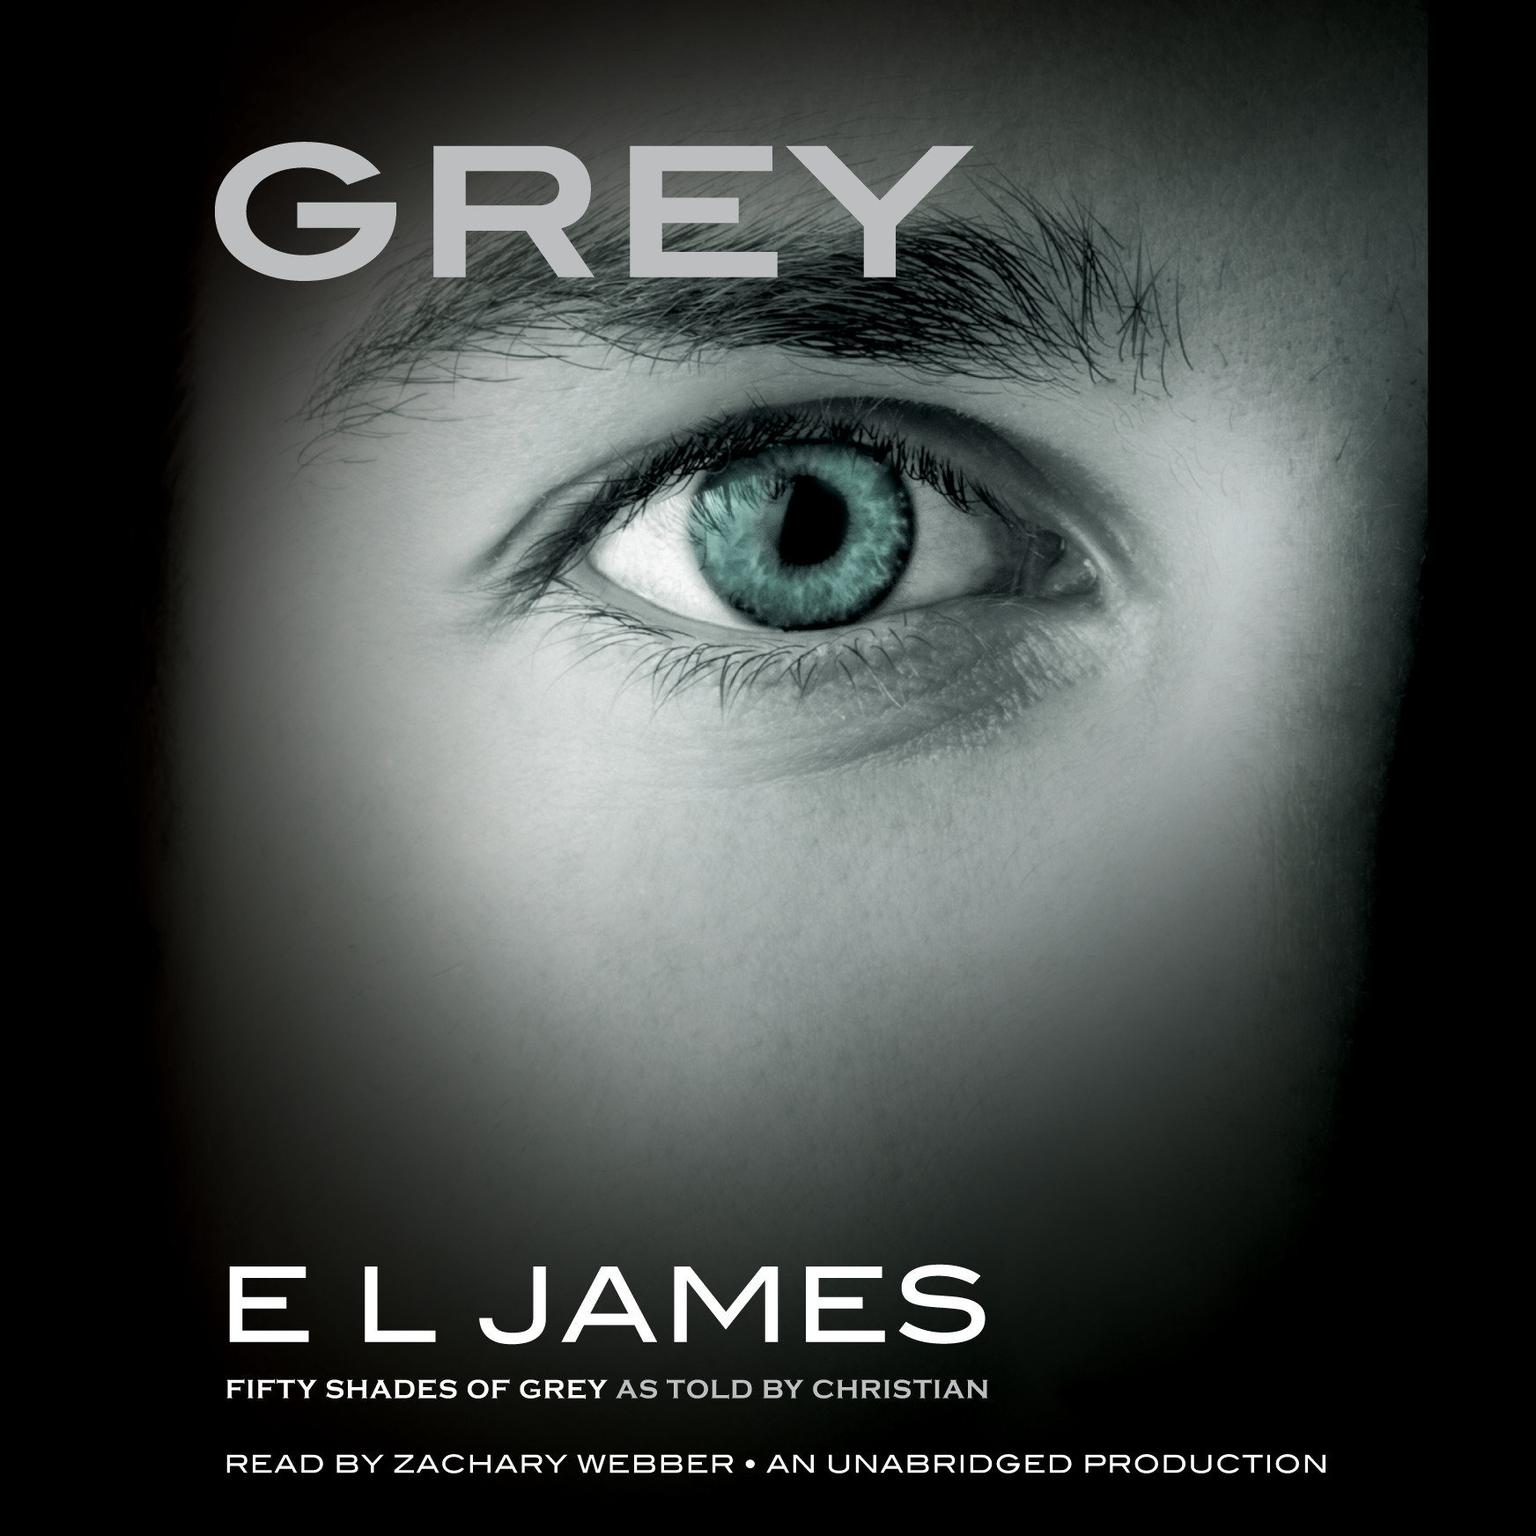 hear fifty shades of grey audiobook by e l james for just 5 95 grey fifty shades of grey as told by christian audiobook by e l james